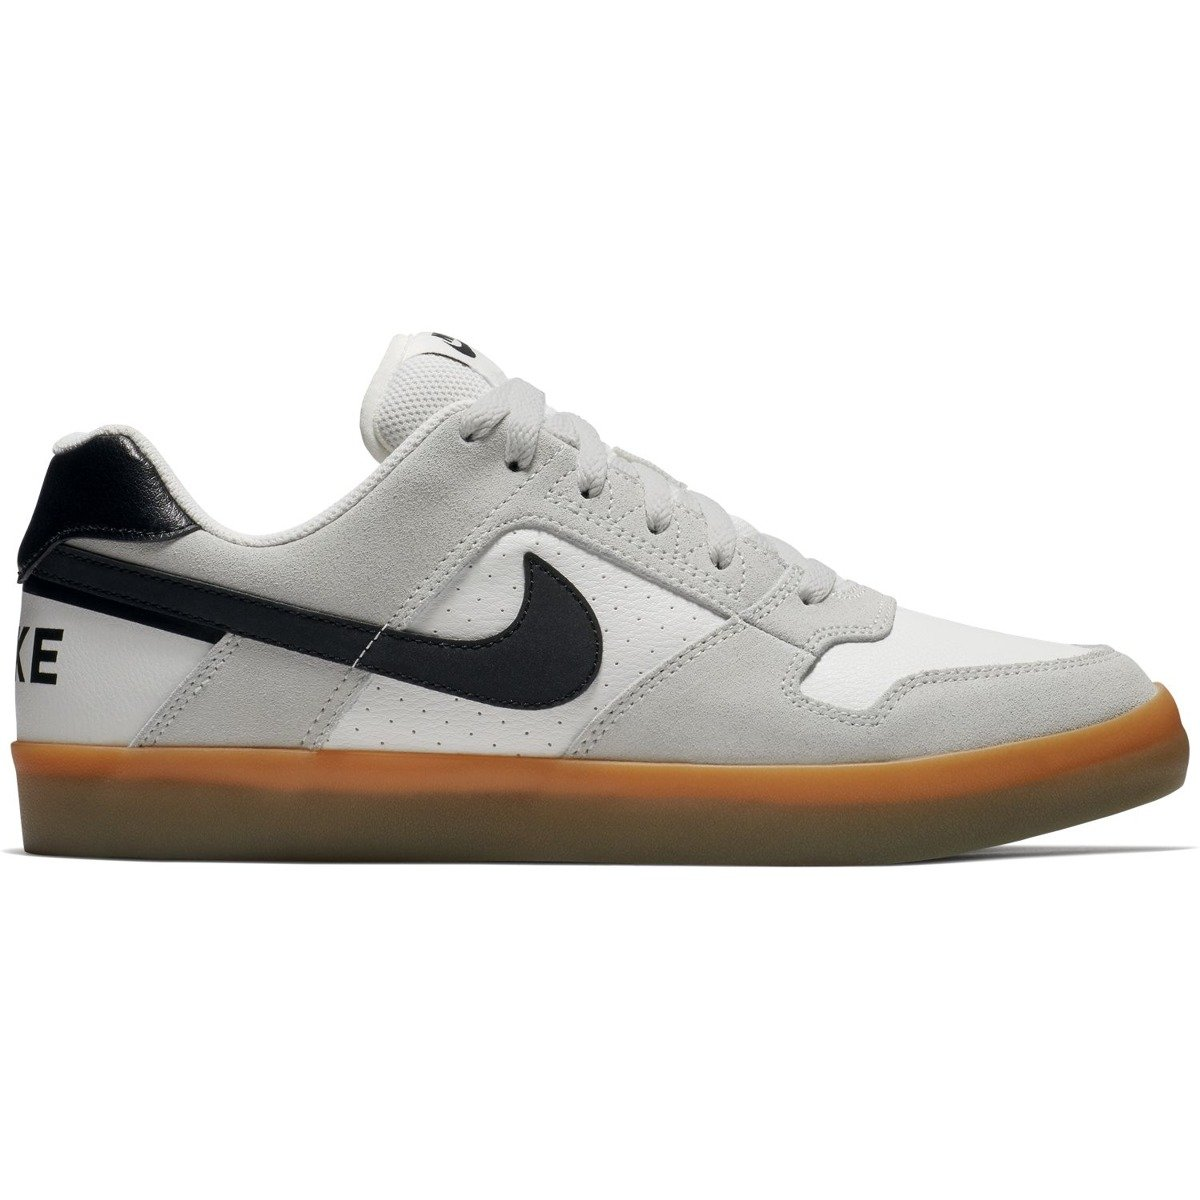 buy popular 14845 a576c nike sb delta force vulc summit whiteblack-gum light brown white  Shoes   Nike SB Brands  Nike SB SALE  Sale - 40%  Shoes Buty  Nike SB  Nike  Summer ...